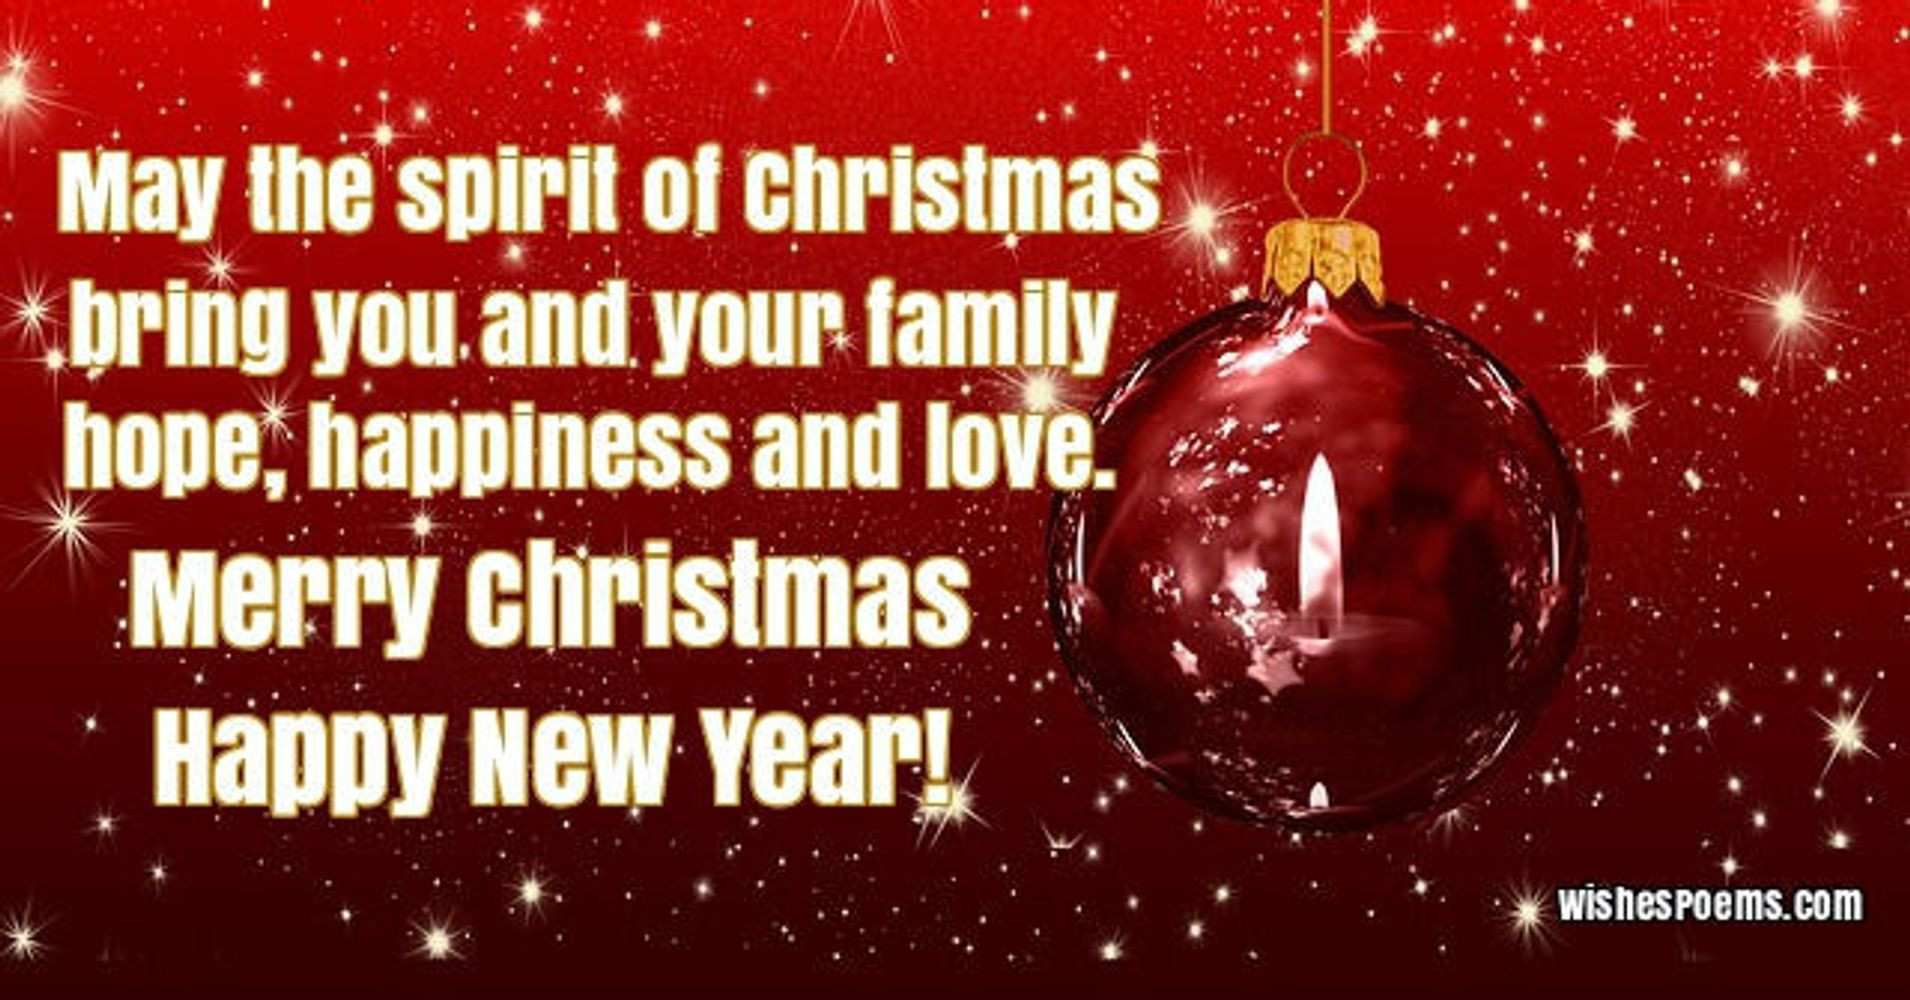 Merry Christmas Quotes  35 Christmas Card Messages What to Write in a Christmas